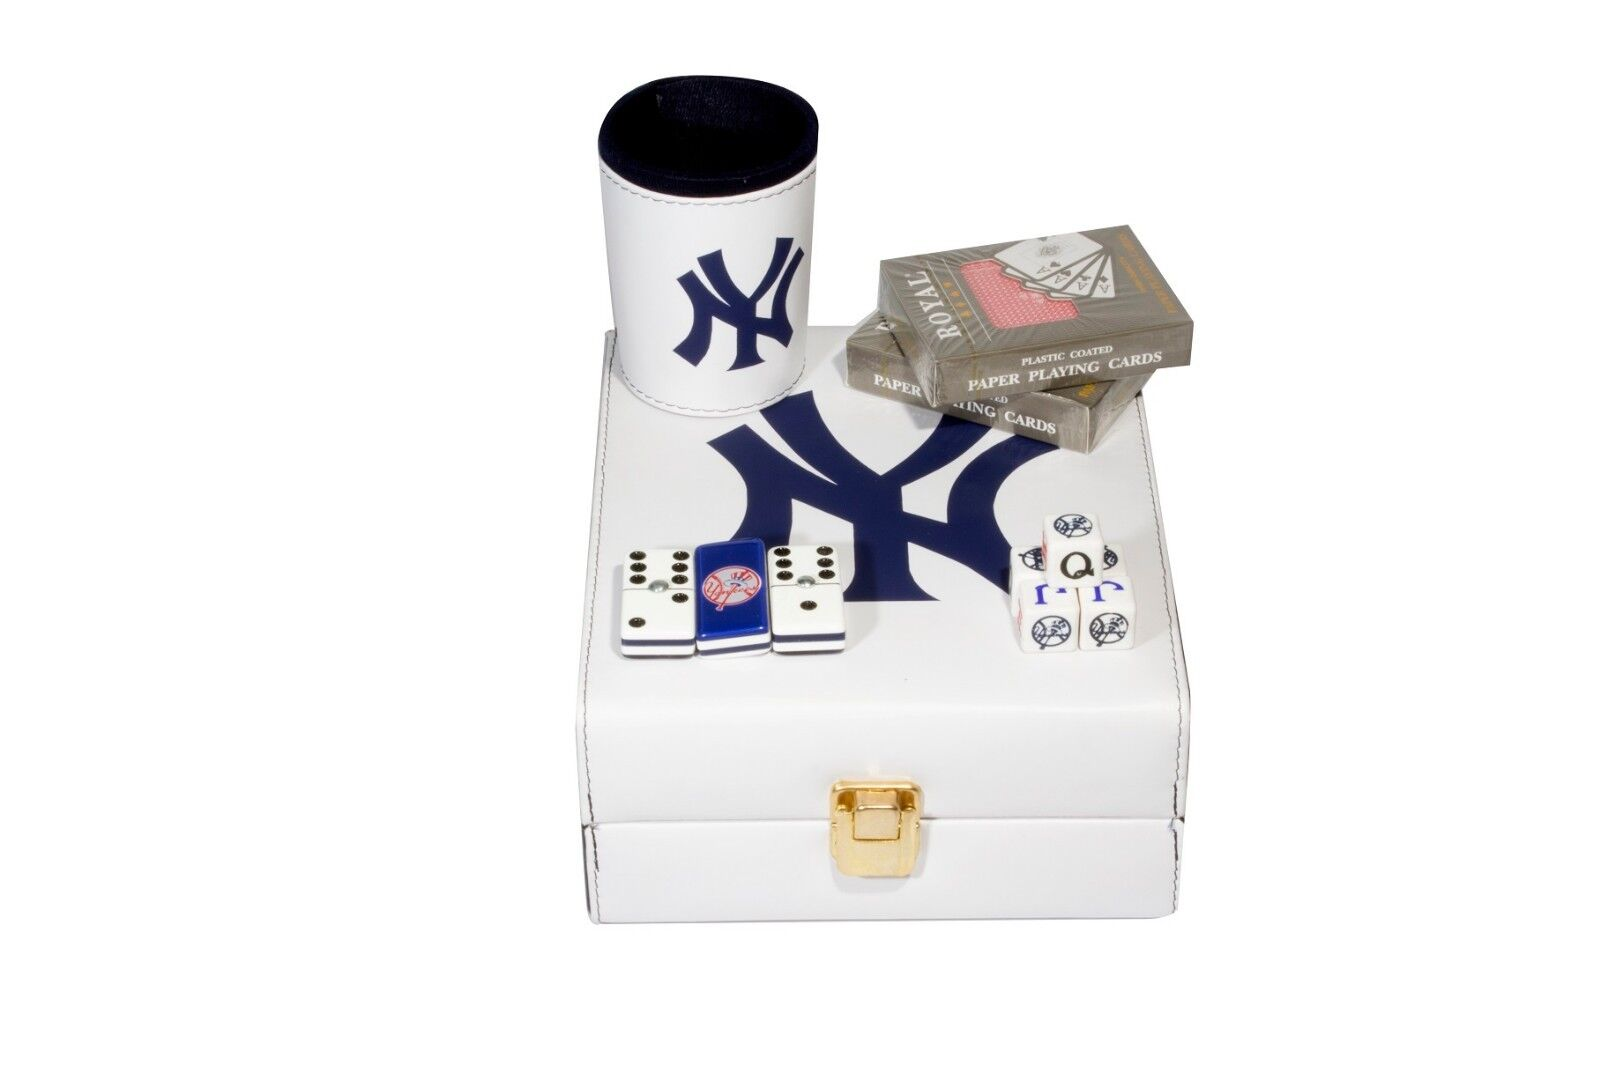 nuovo York Yankees Deluxe Set 3  giocos  Domino, Dice Cup, 2 Poker autods  comprare sconti